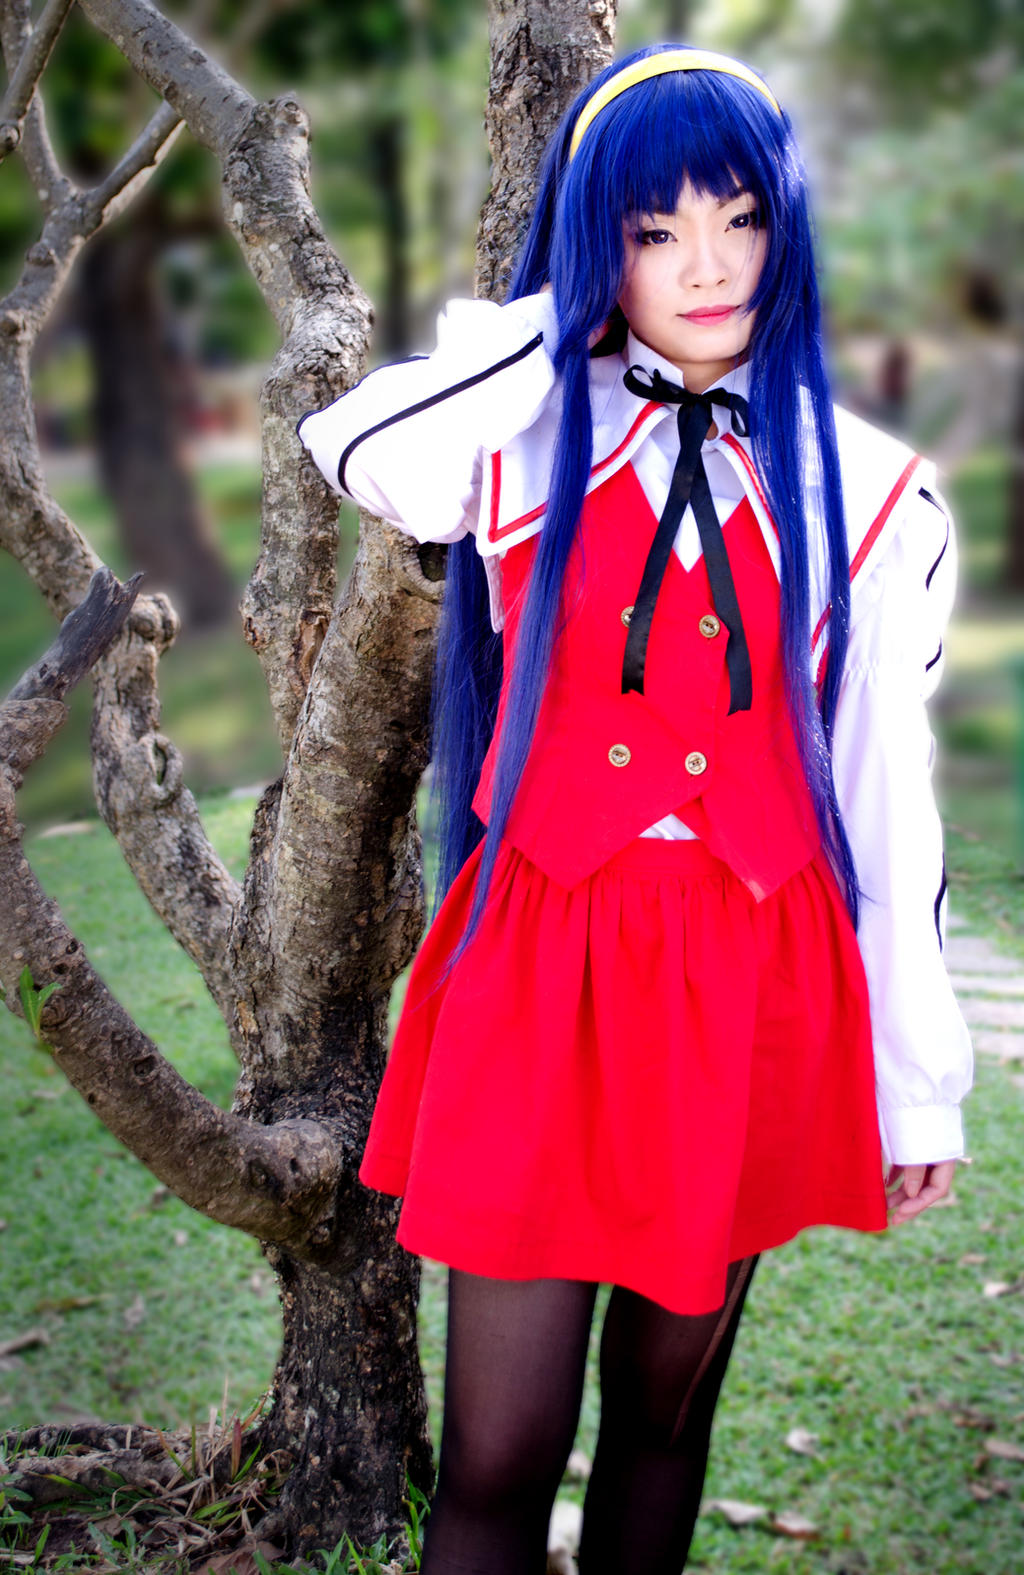 Kannazuki no Miko Cosplay 4 by MinakoMogami2412 on DeviantArt